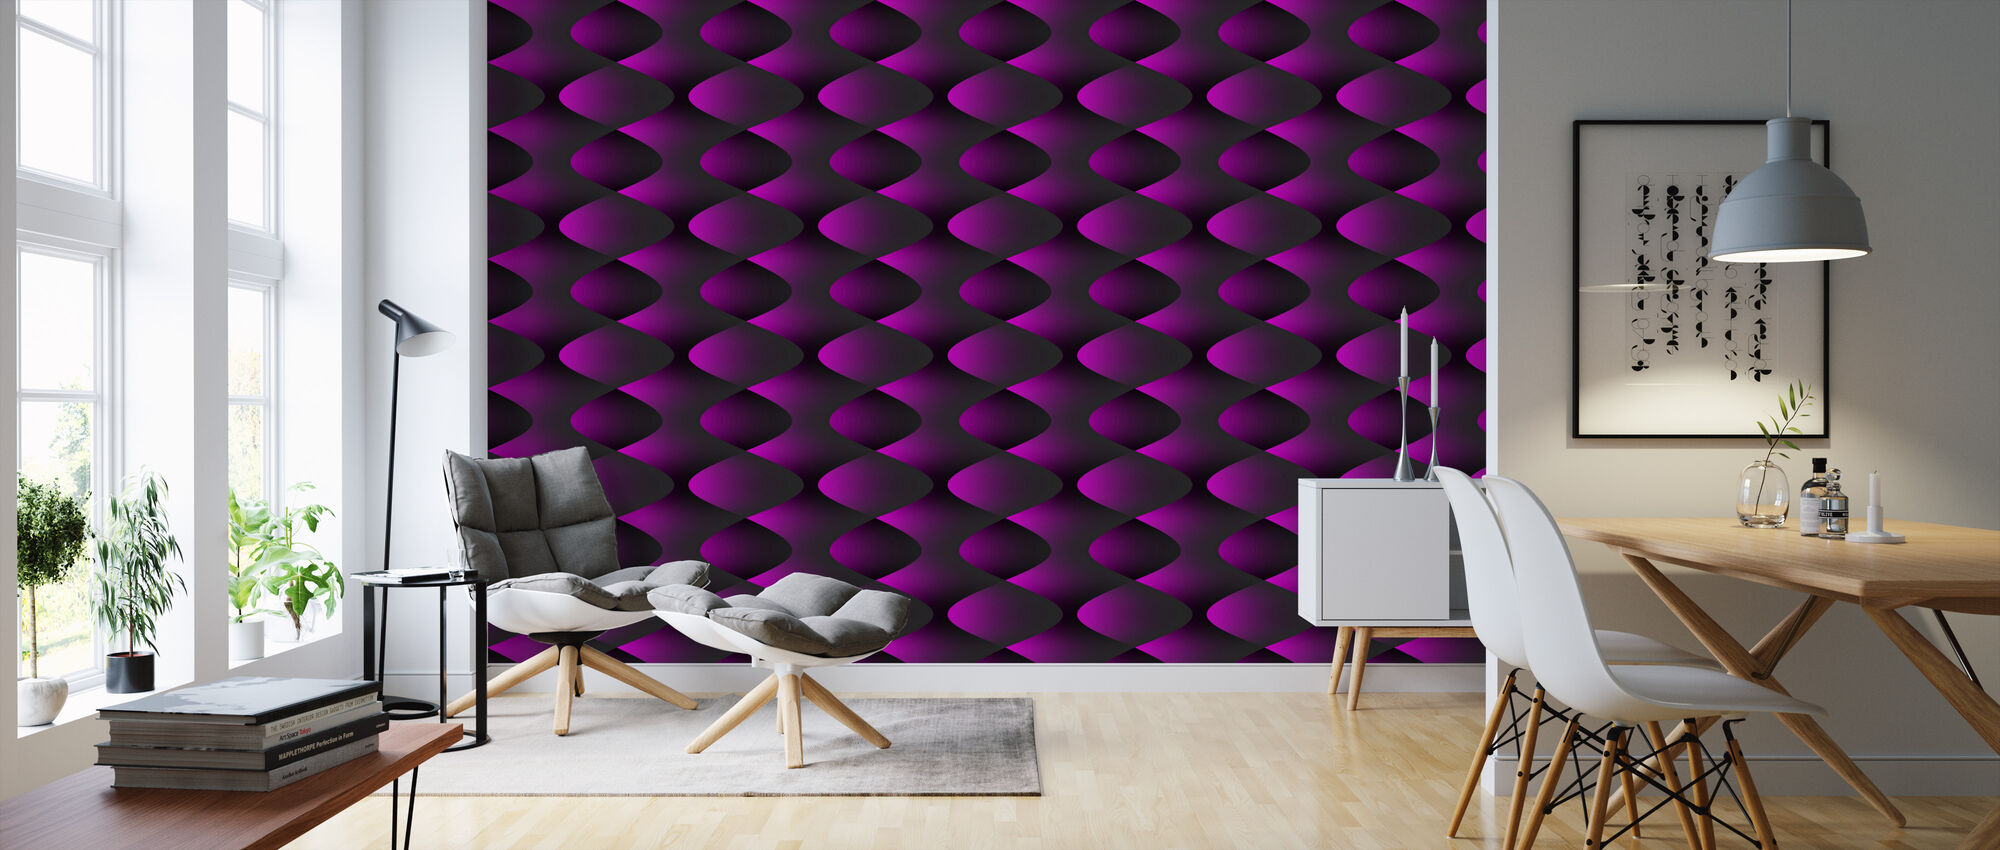 Magenta - Wallpaper - Living Room